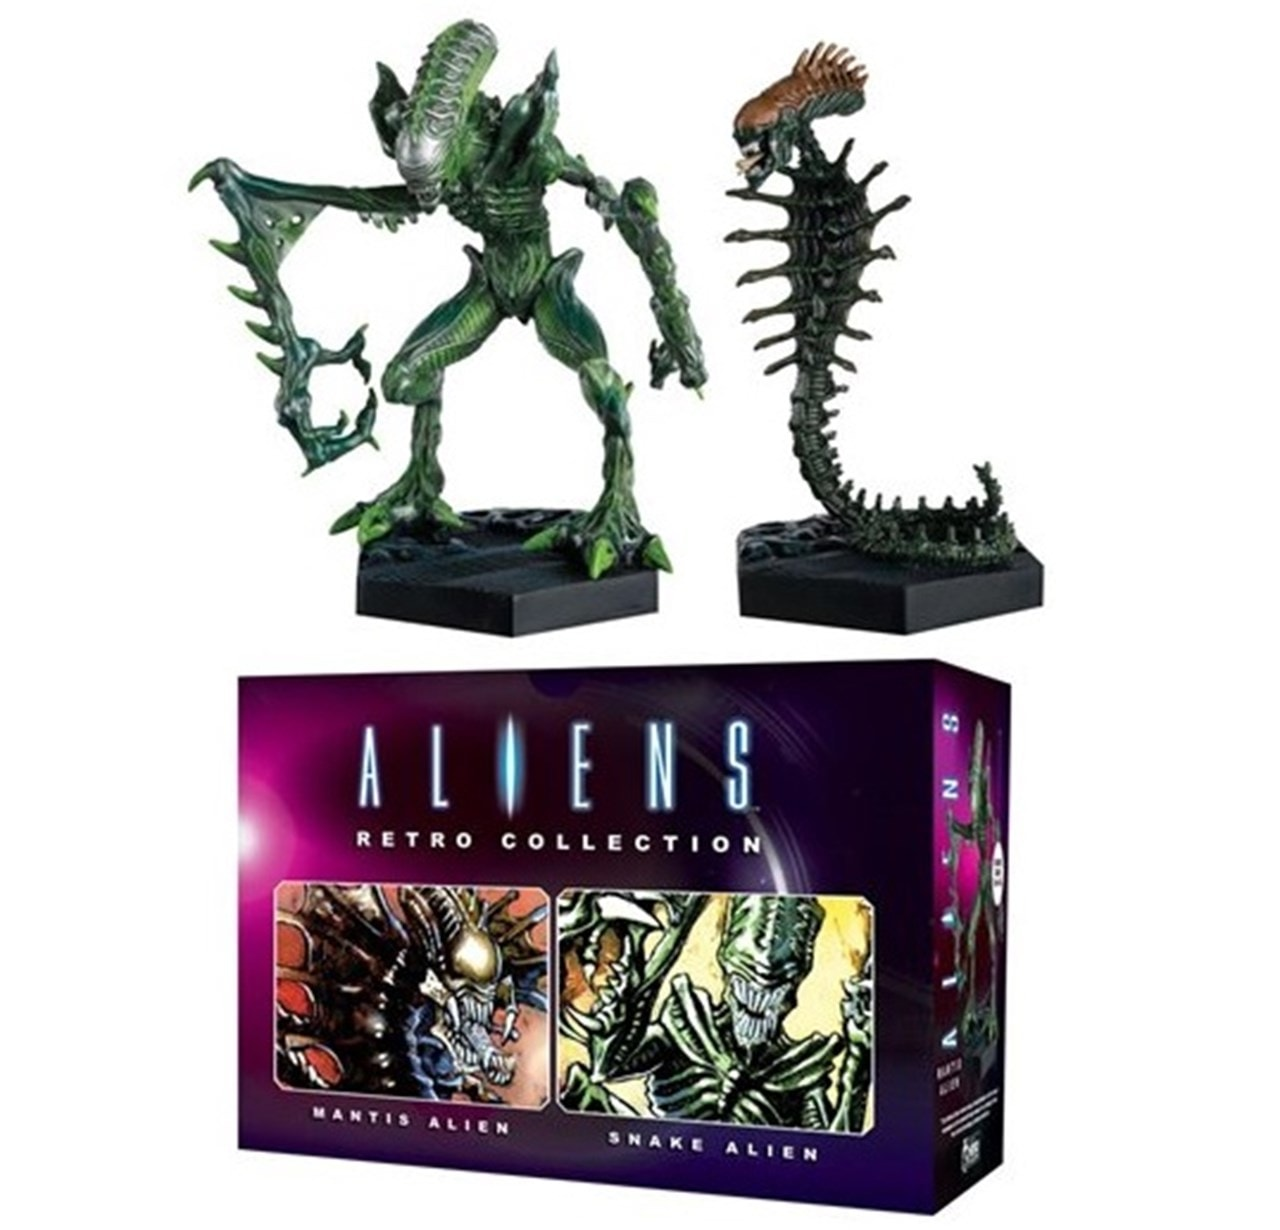 Alien: Snake And Mantis Action Figures - 1